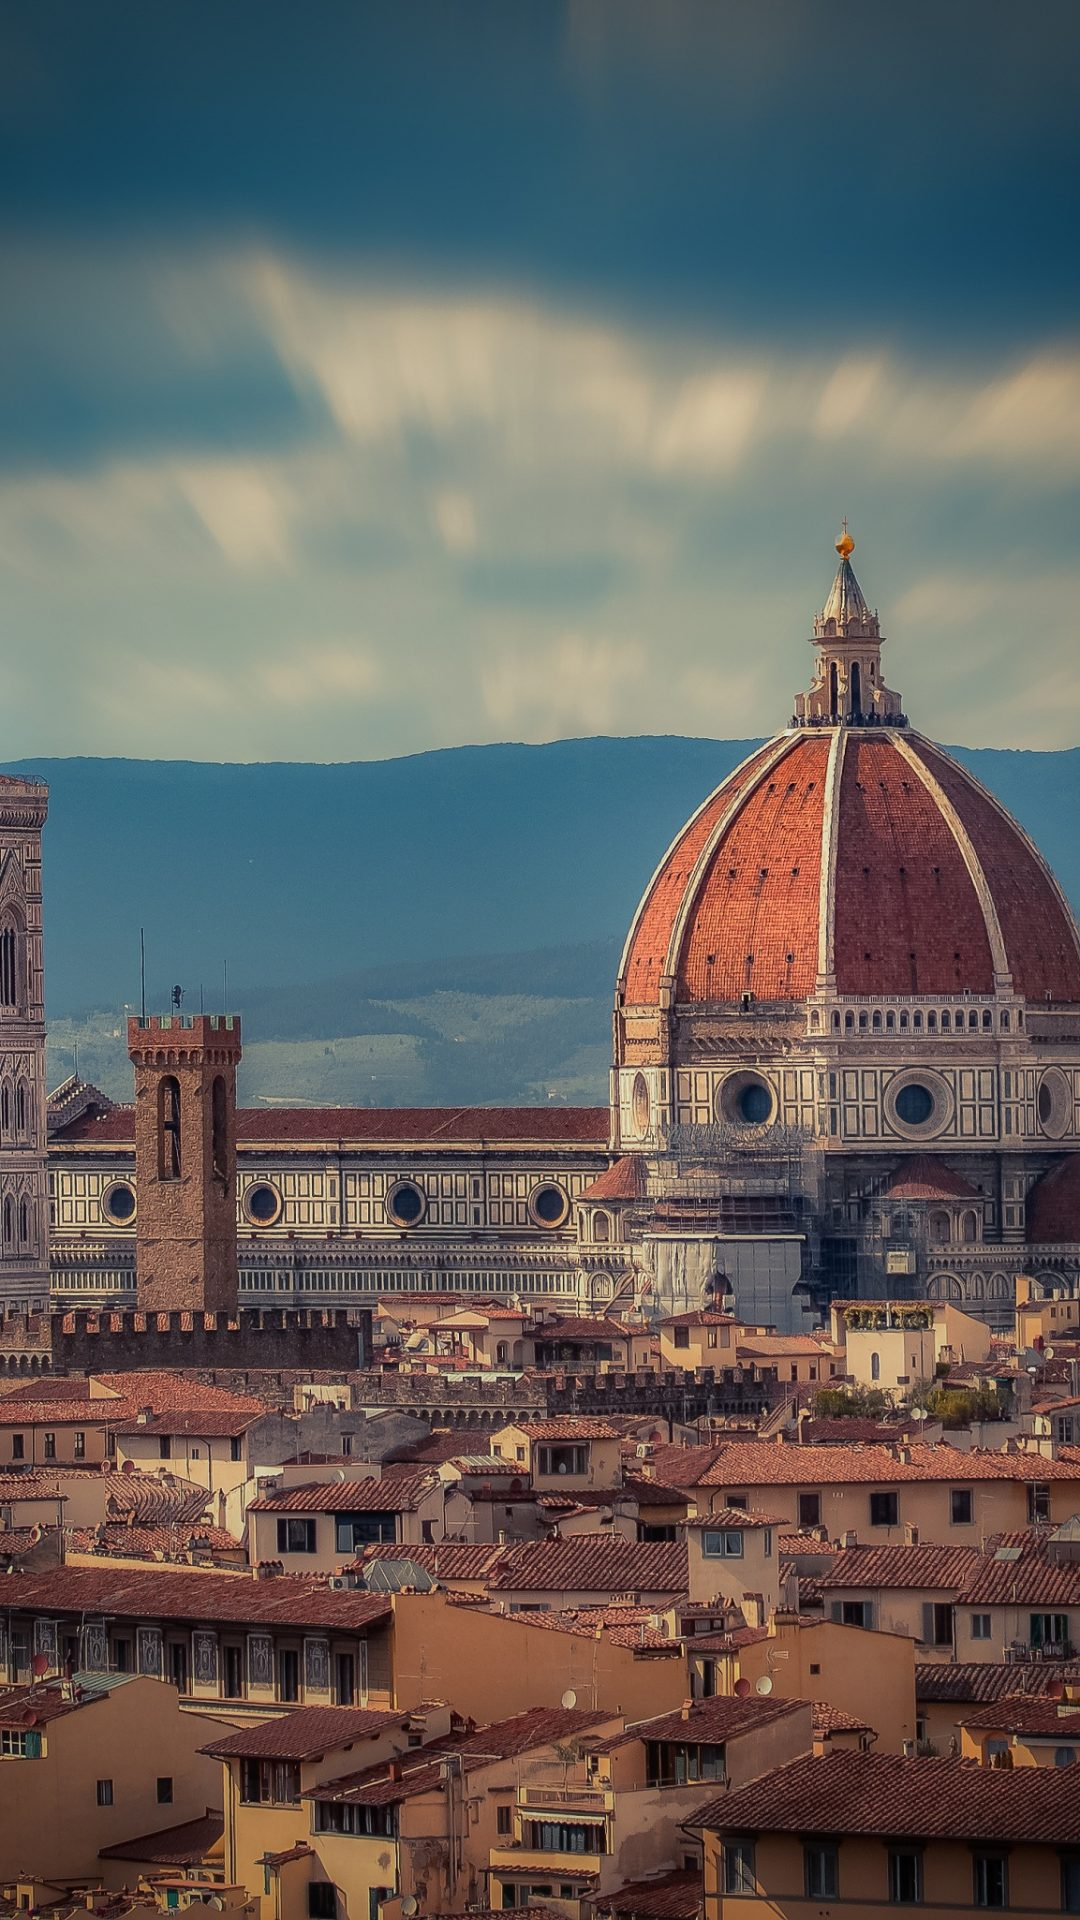 Ben 10 Hd Wallpaper Florence Cathedral Italy Hd Wallpaper